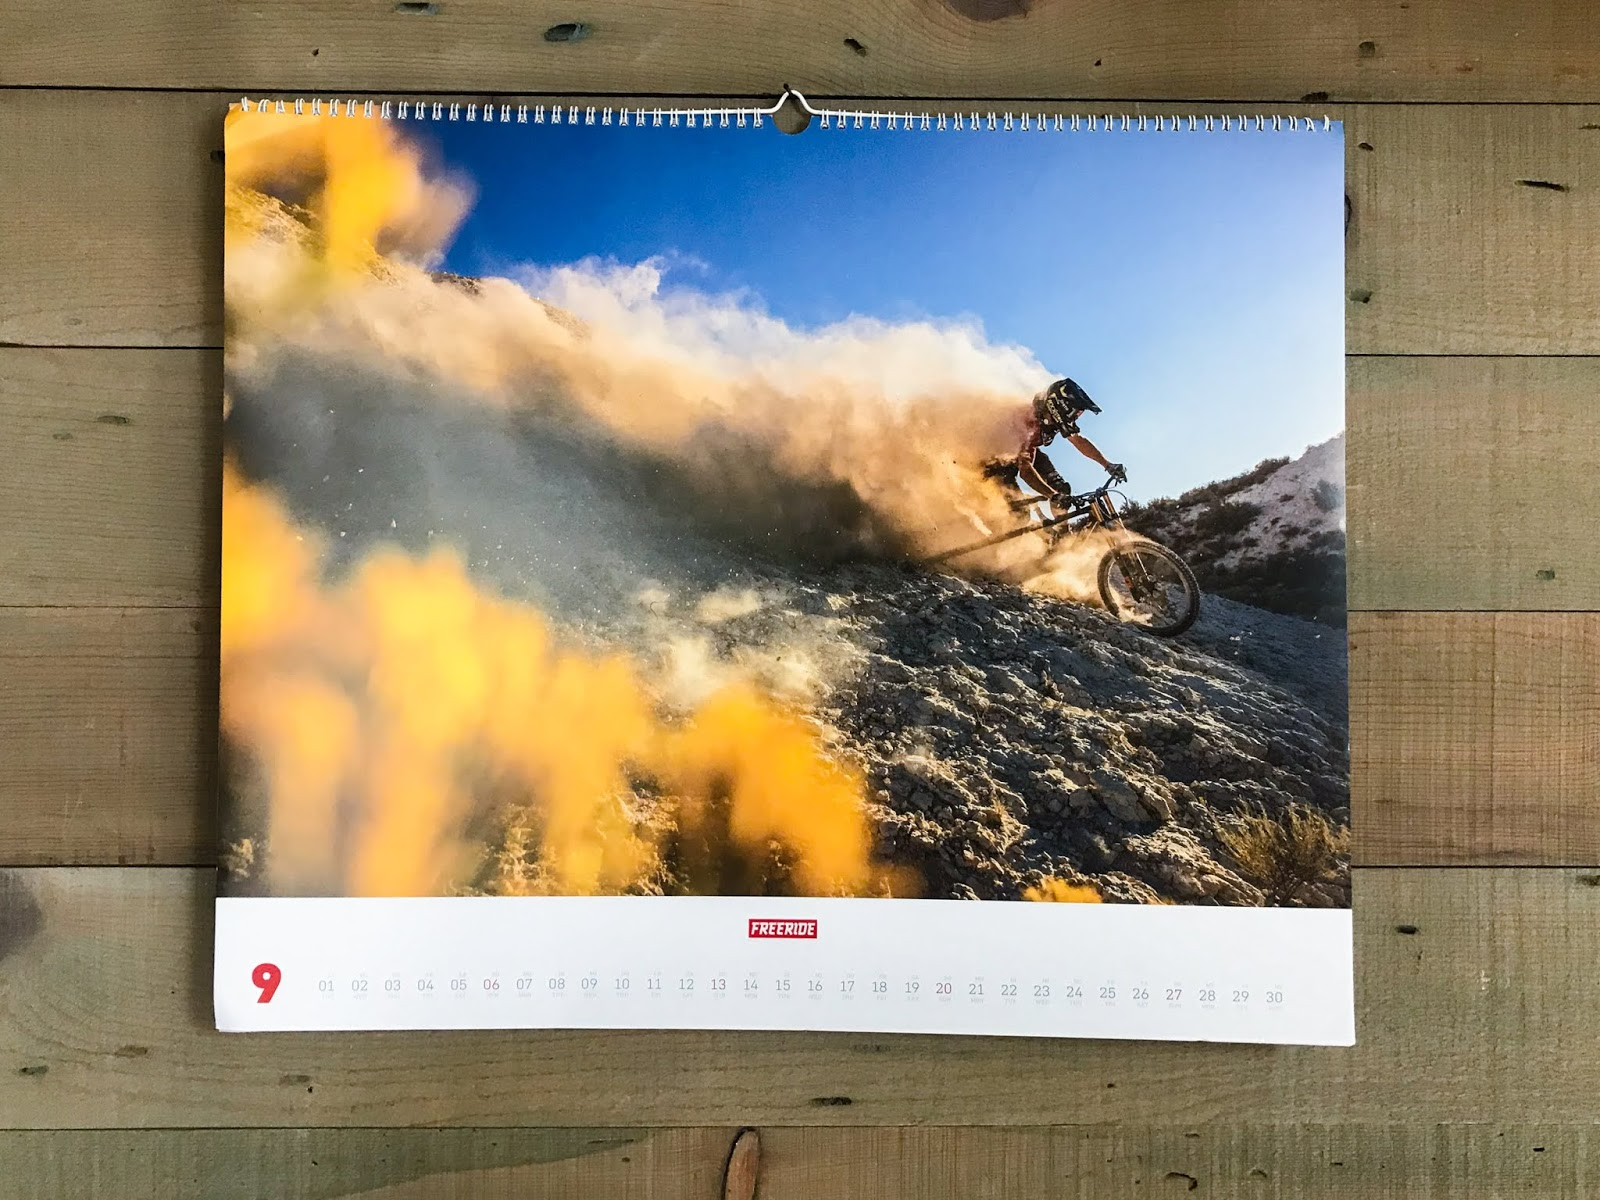 Mountain biker and personality Cam McCaul bikes in a super dusty area in the desert, this photo made a calendar print.